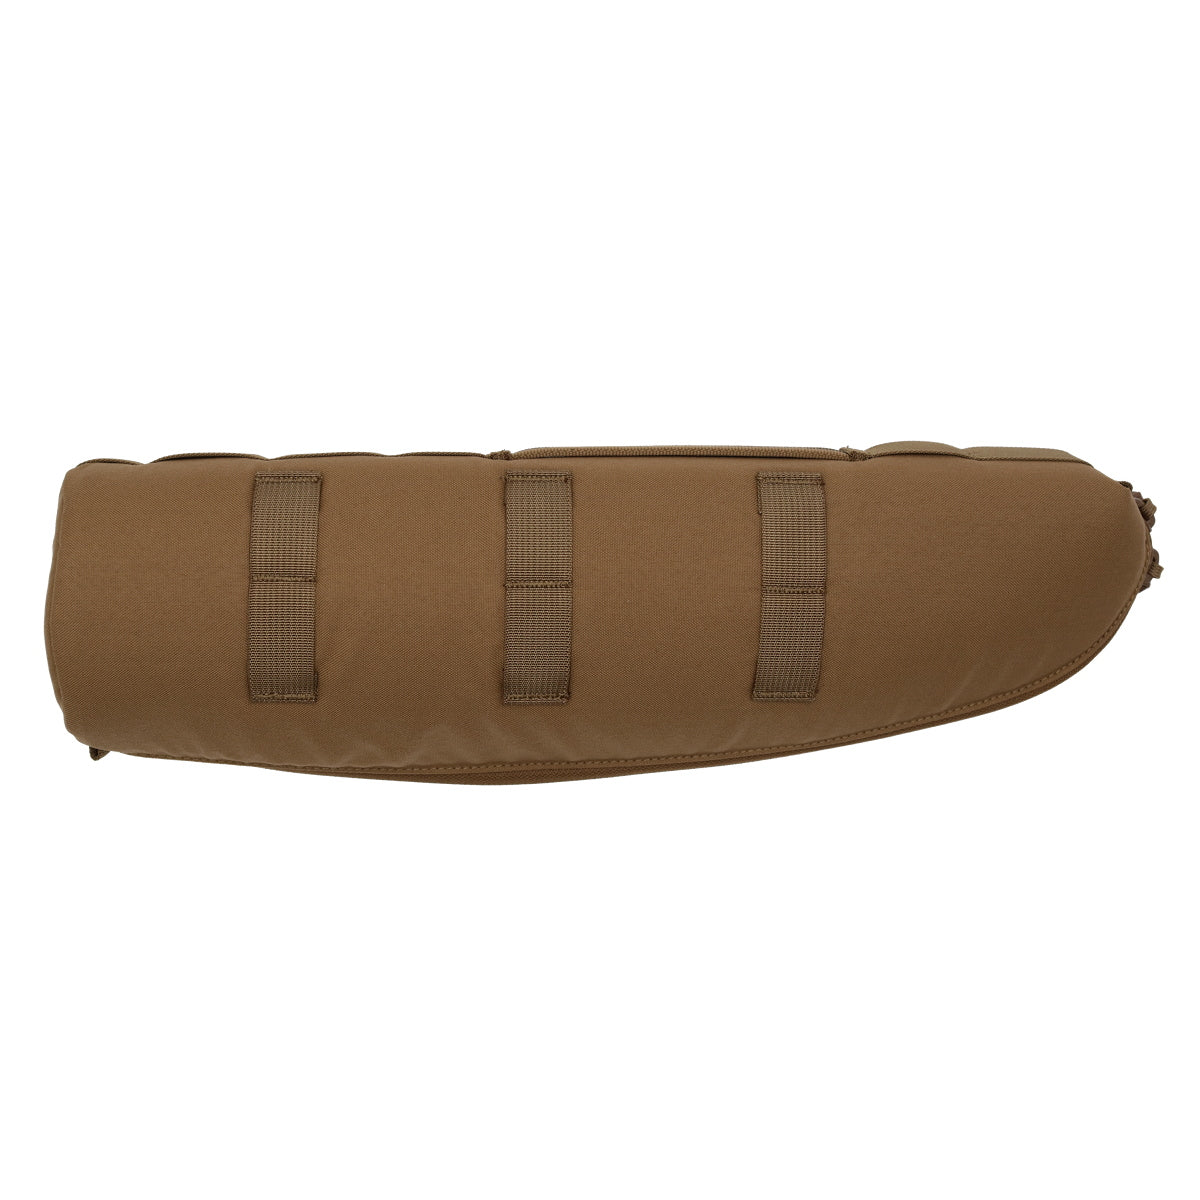 85mm & 65mm STRAIGHT SPOTTING SCOPE CASE